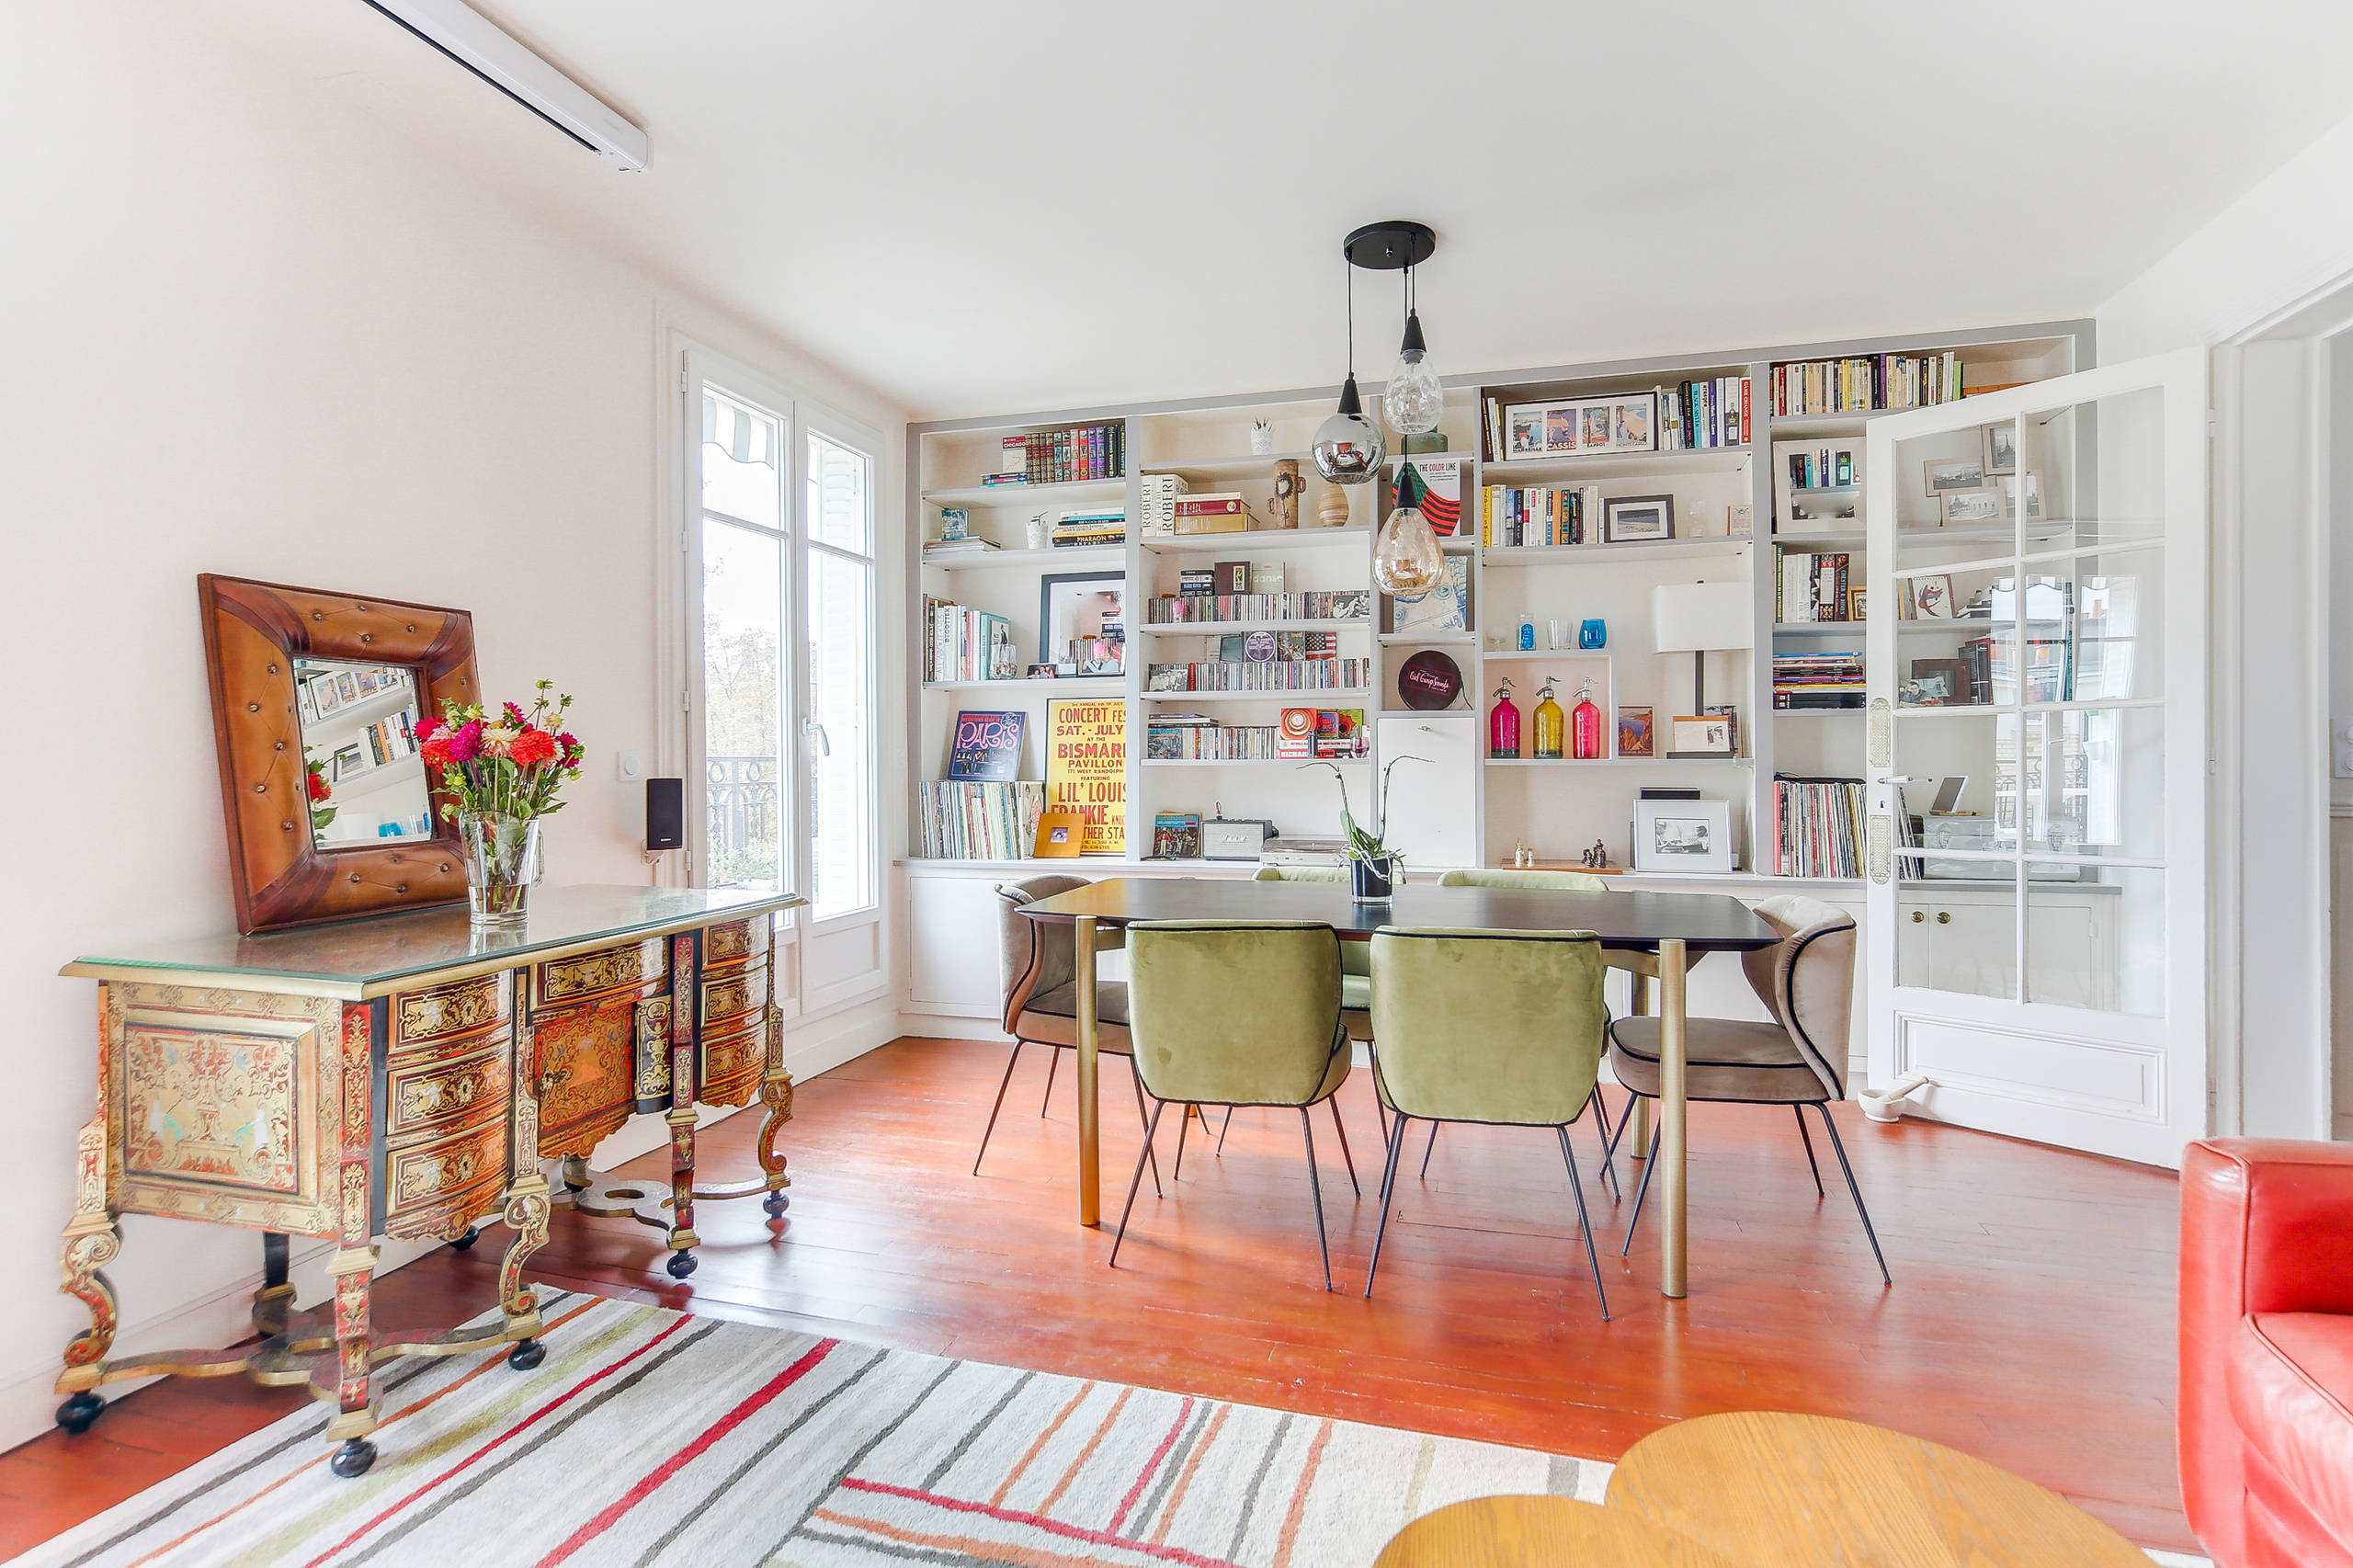 16 Amazing Eclectic Dining Room Interior Designs That Will Charm You